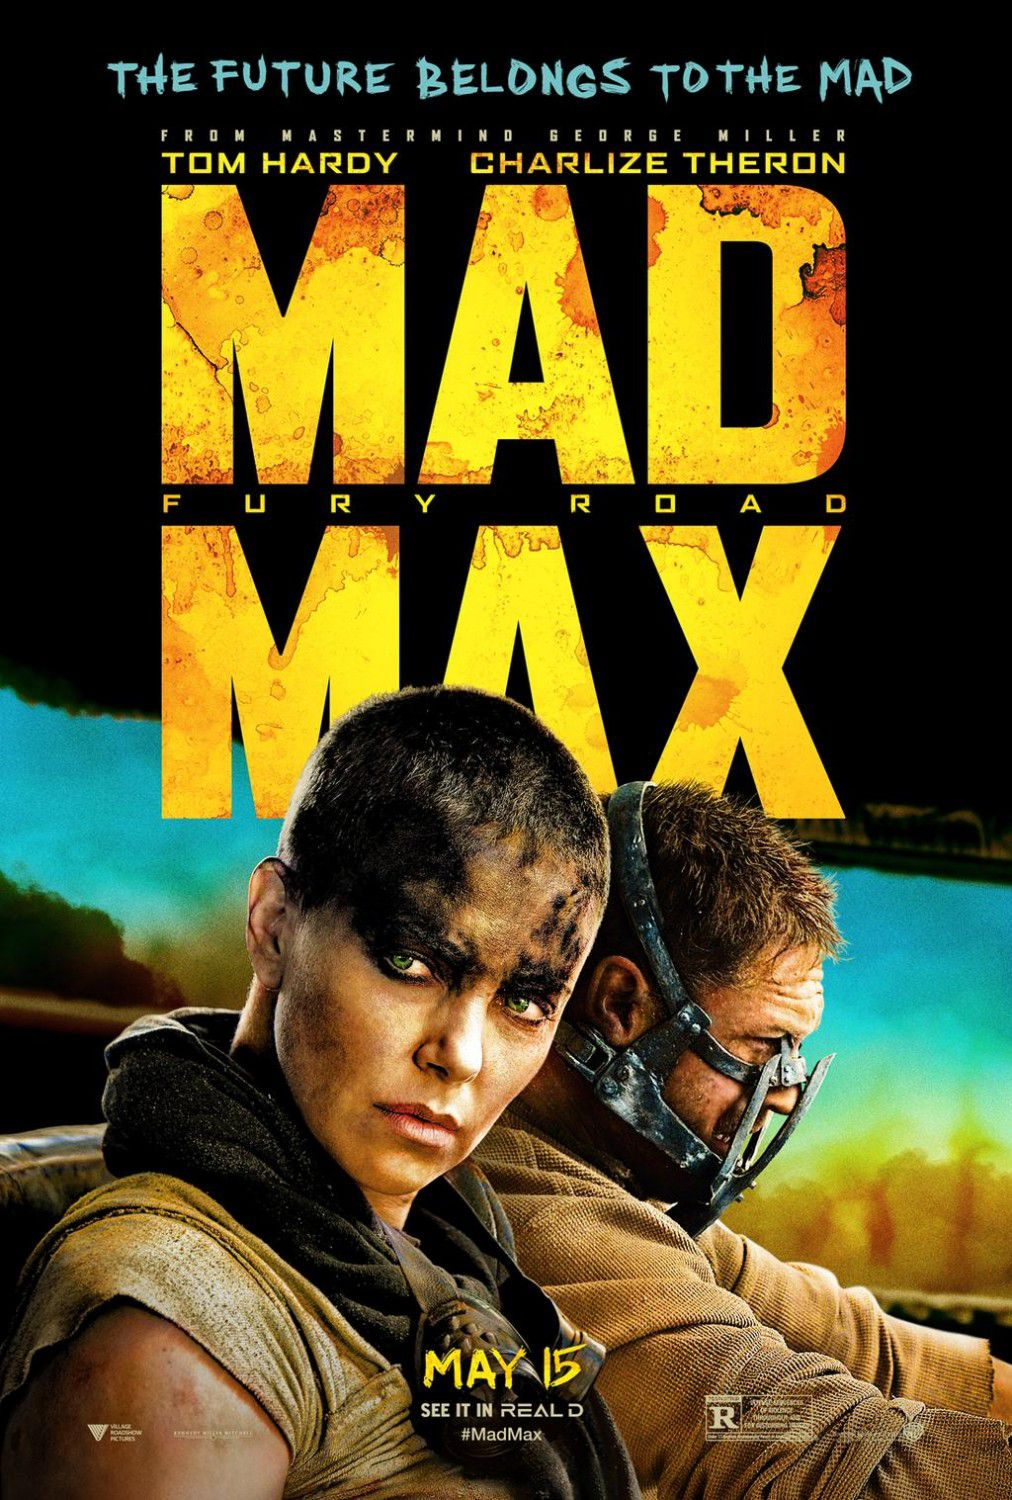 Mad Max - Fury Road (2015) - Charlize Theron